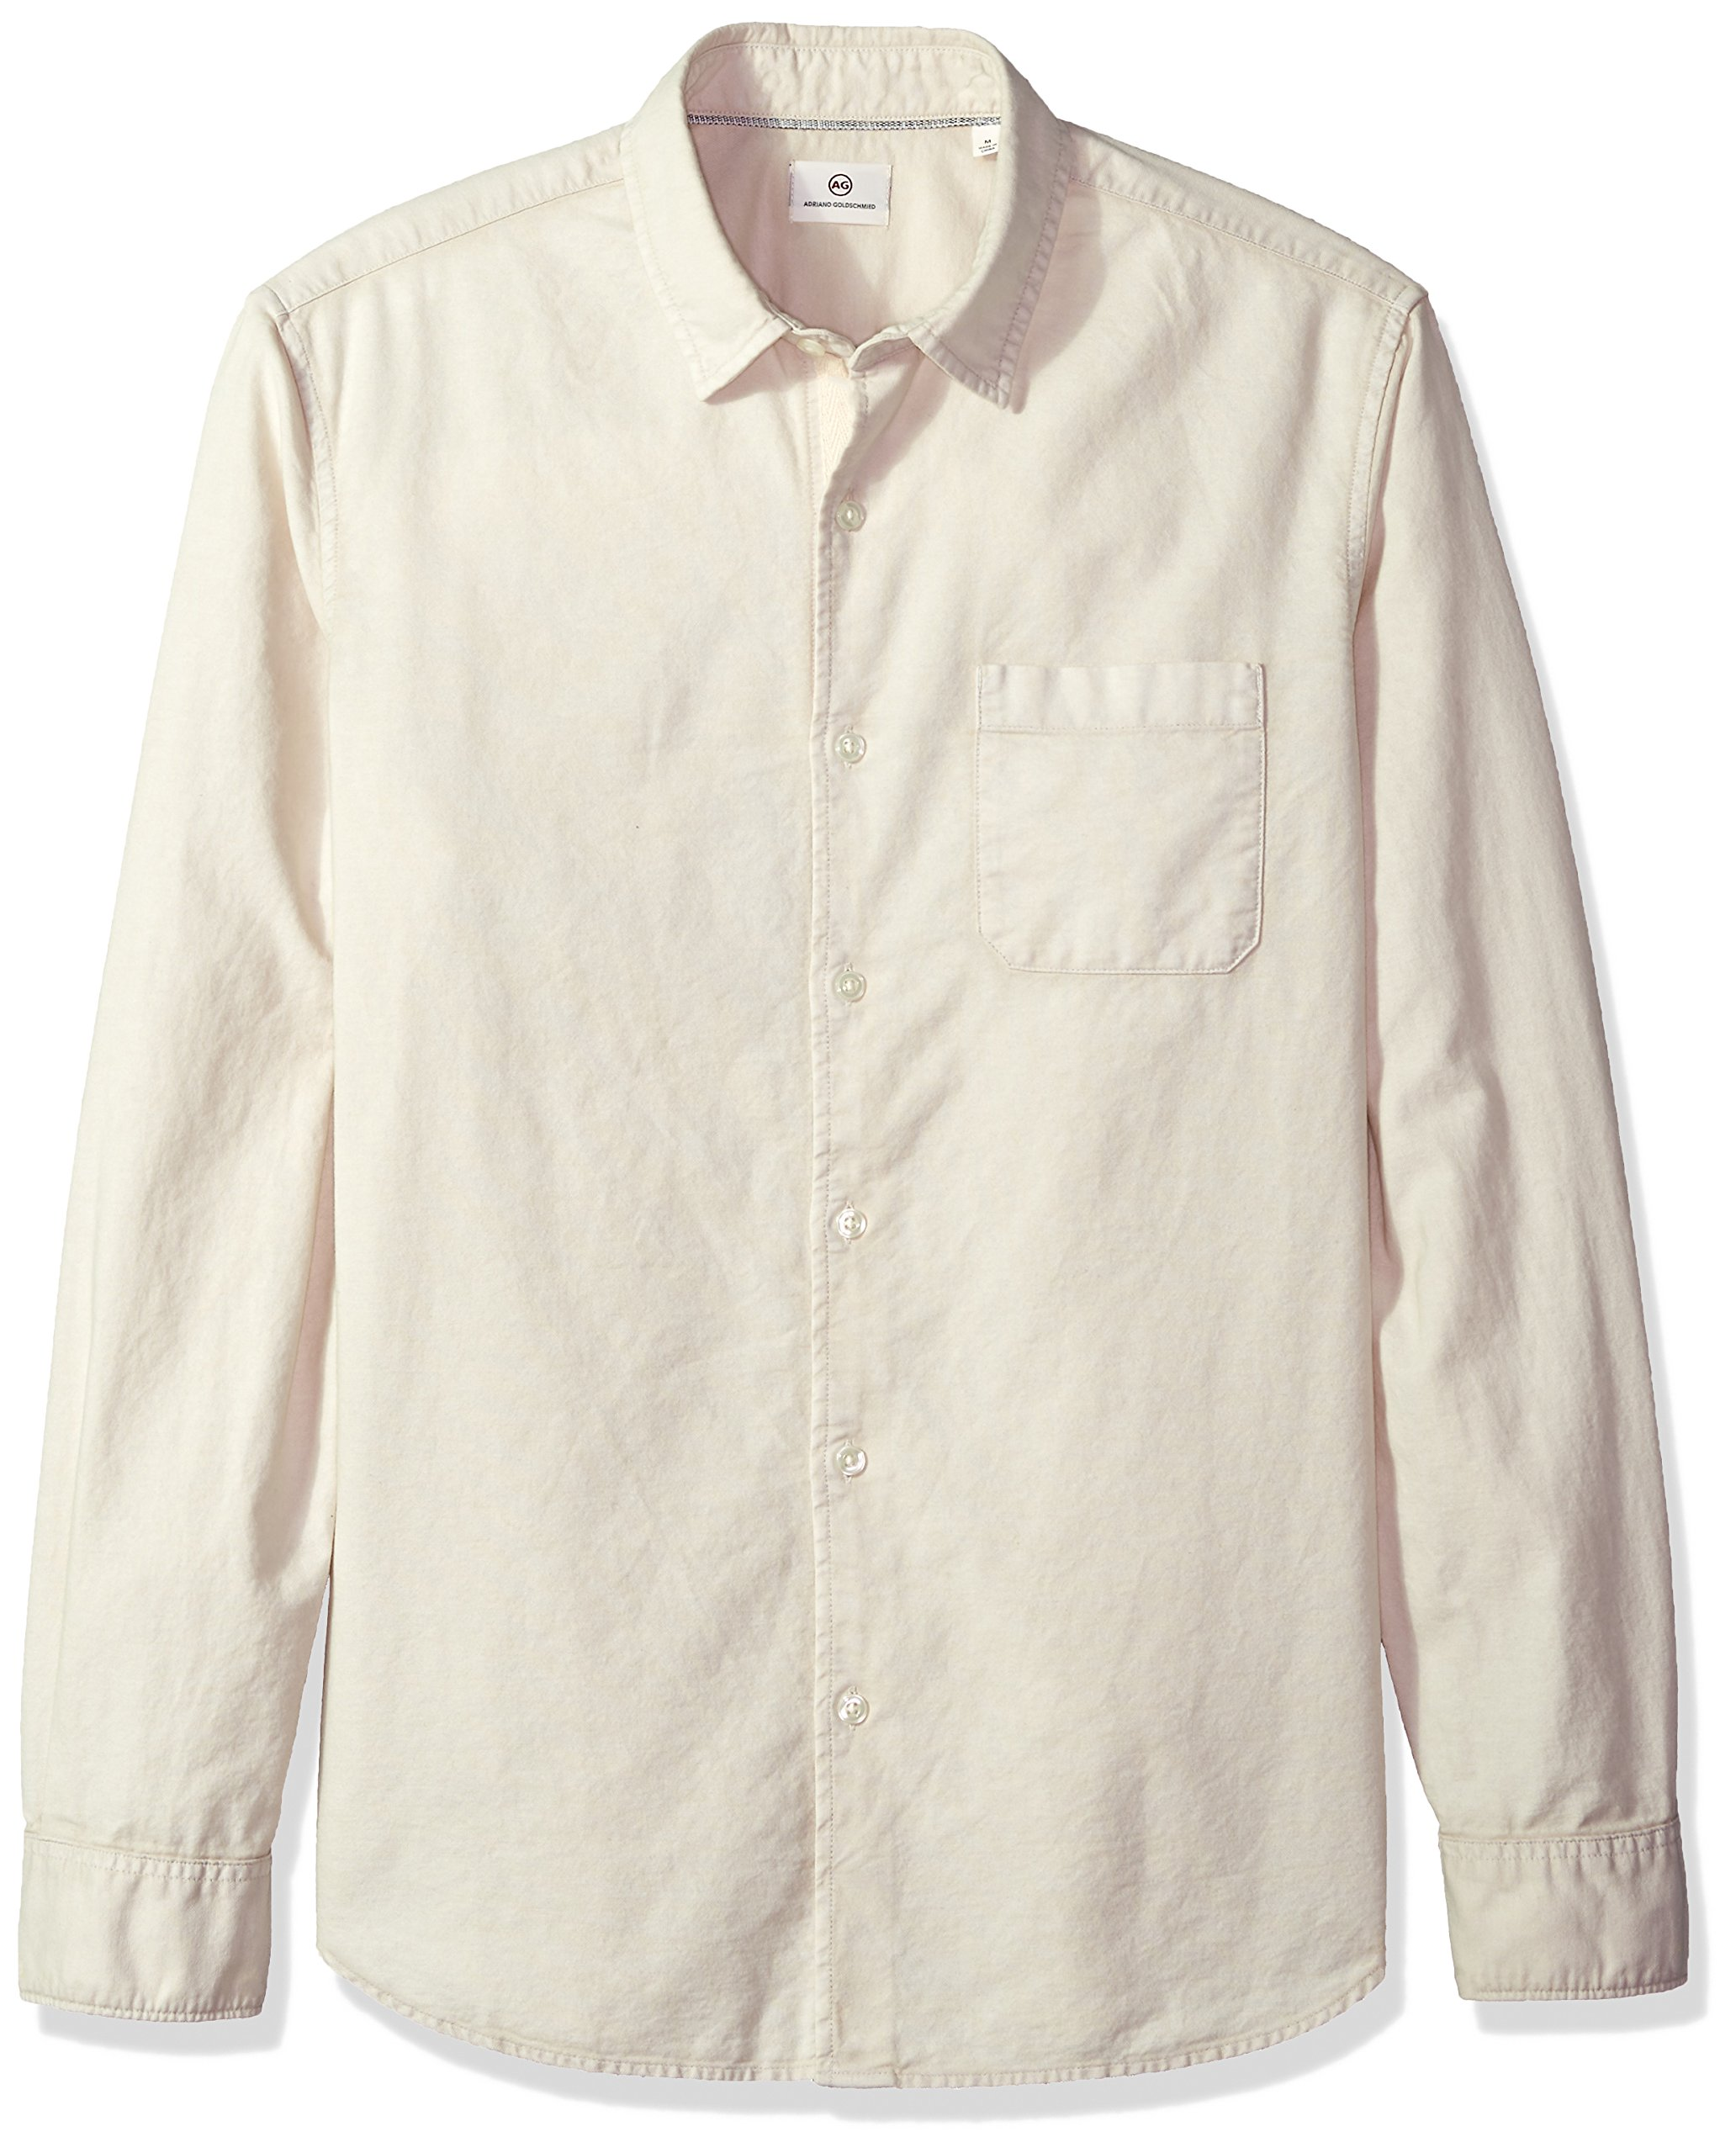 AG Adriano Goldschmied Men's Bristol Long Sleeve Slub Cotton Button Down Oxford, Sunbaked Mineral Veil, L